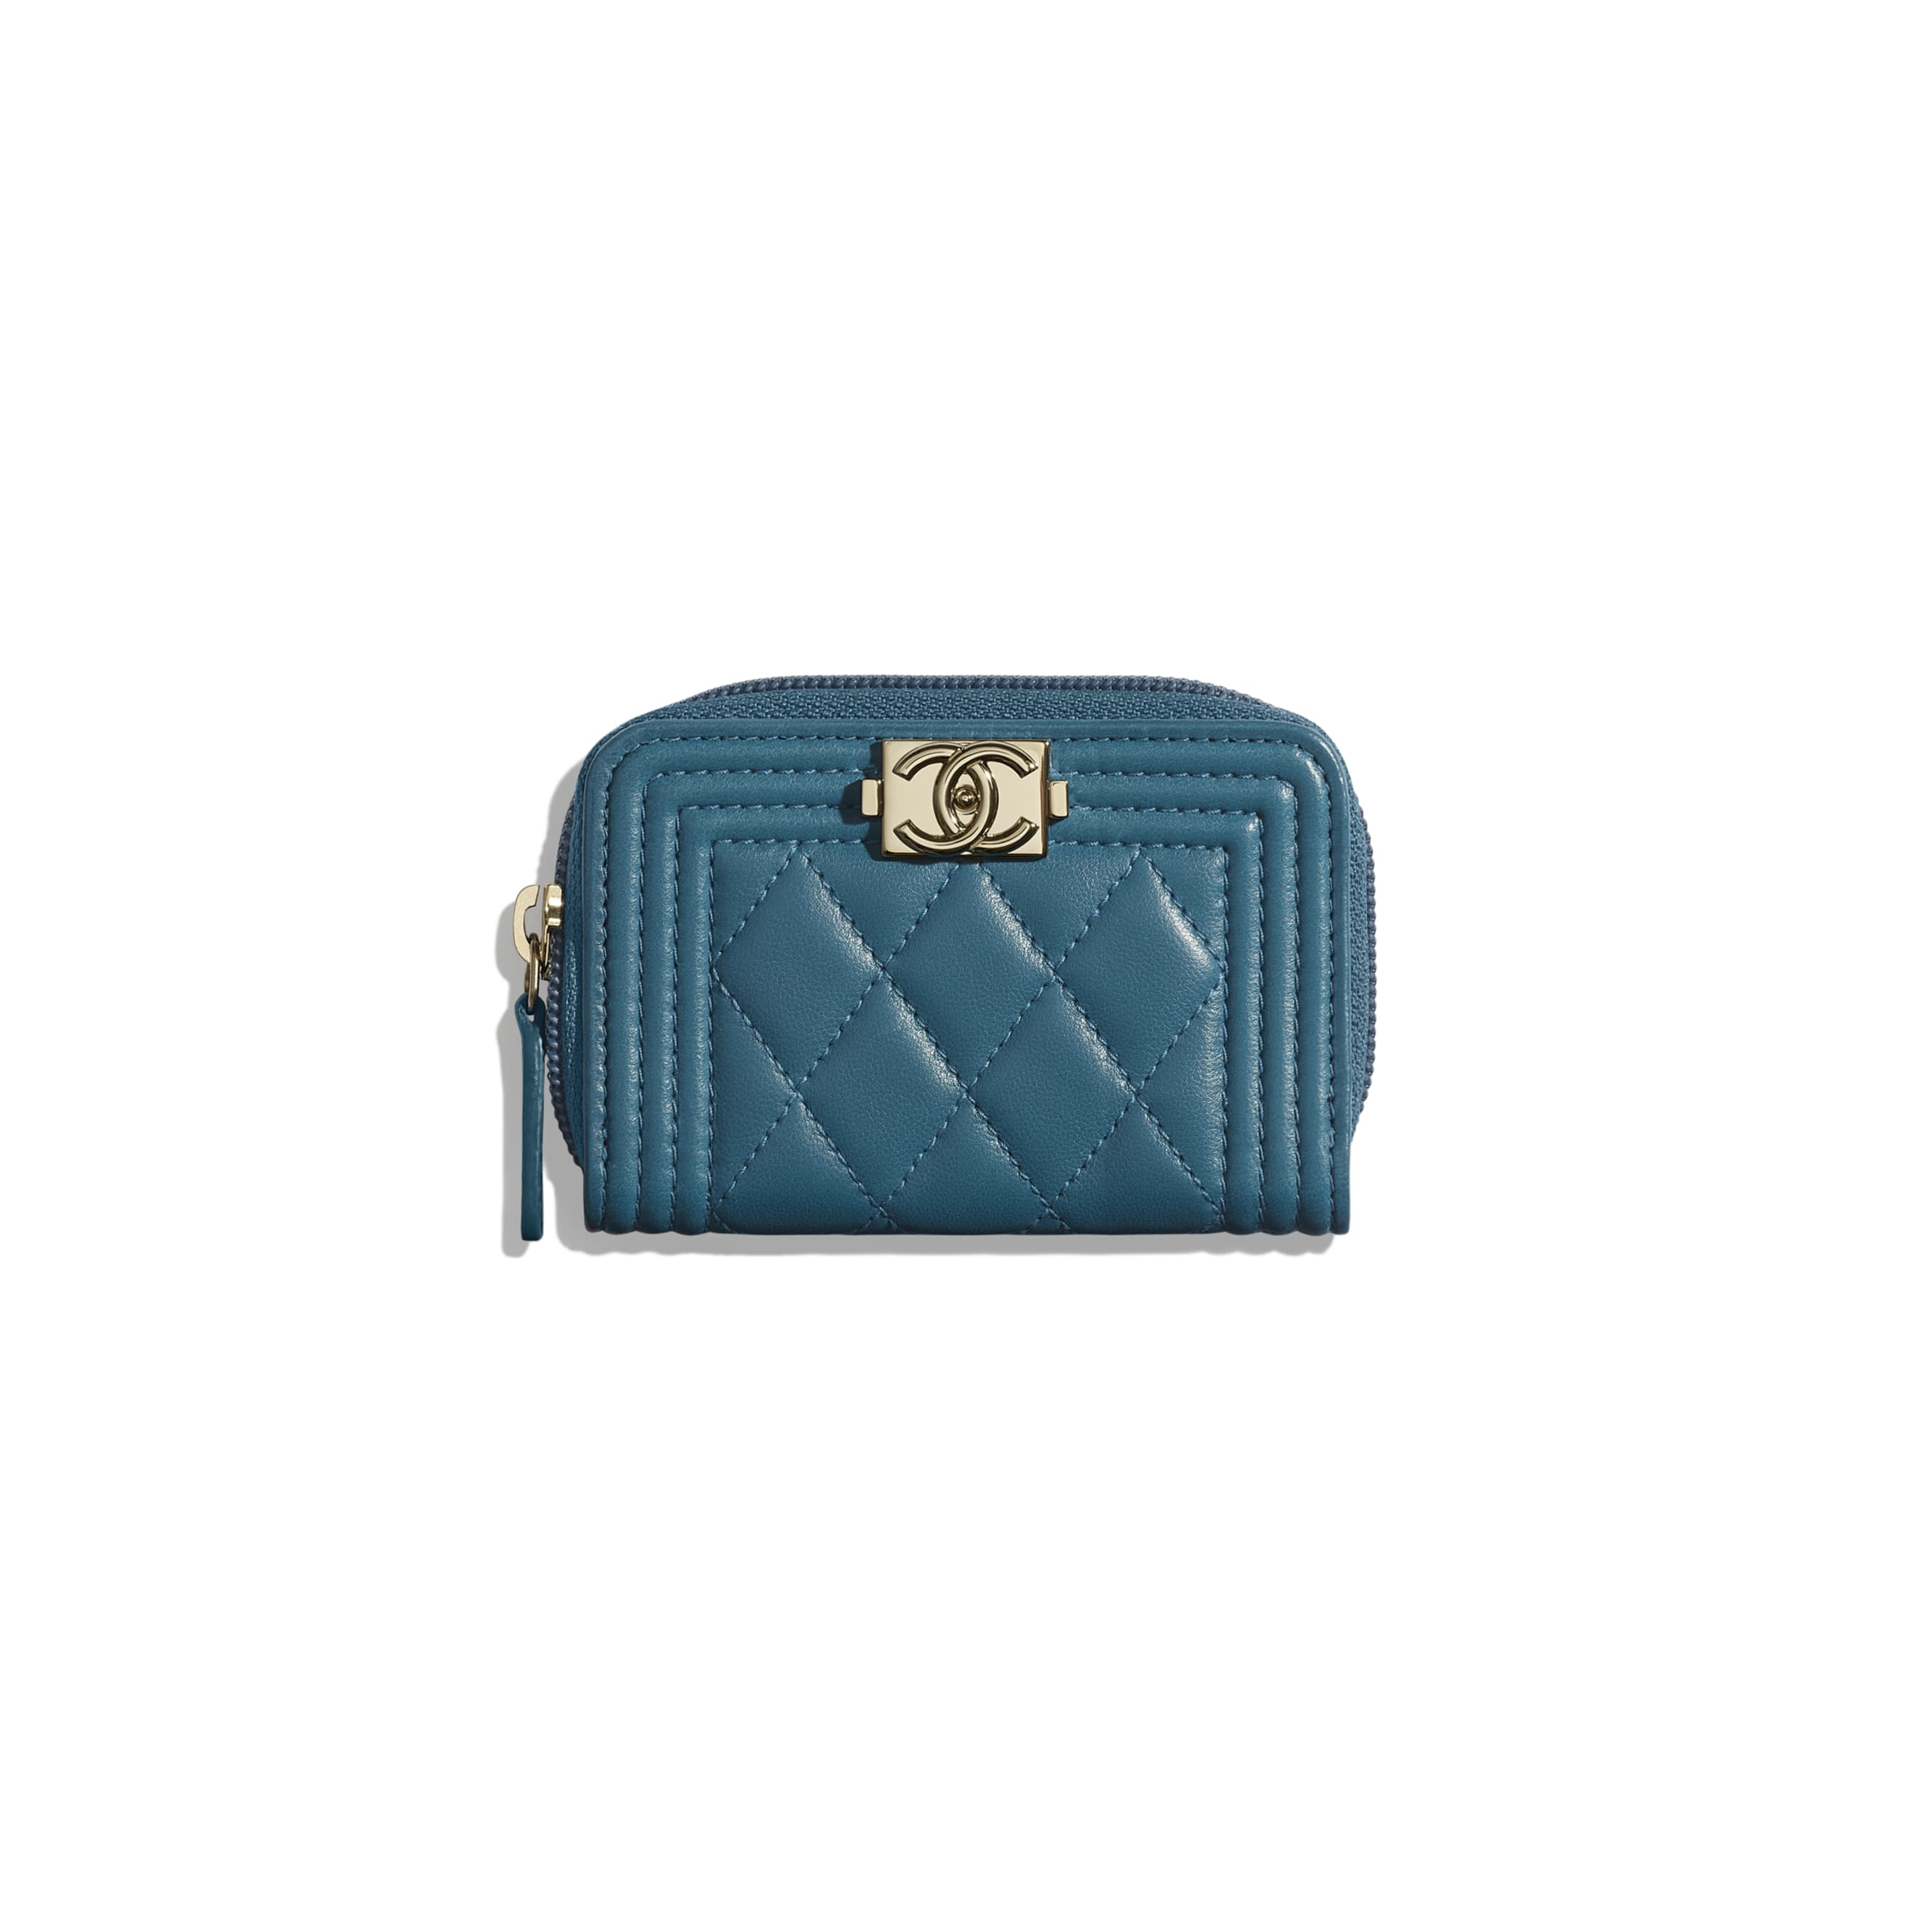 BOY CHANEL Zipped Coin Purse - Turquoise - Lambskin - Default view - see standard sized version